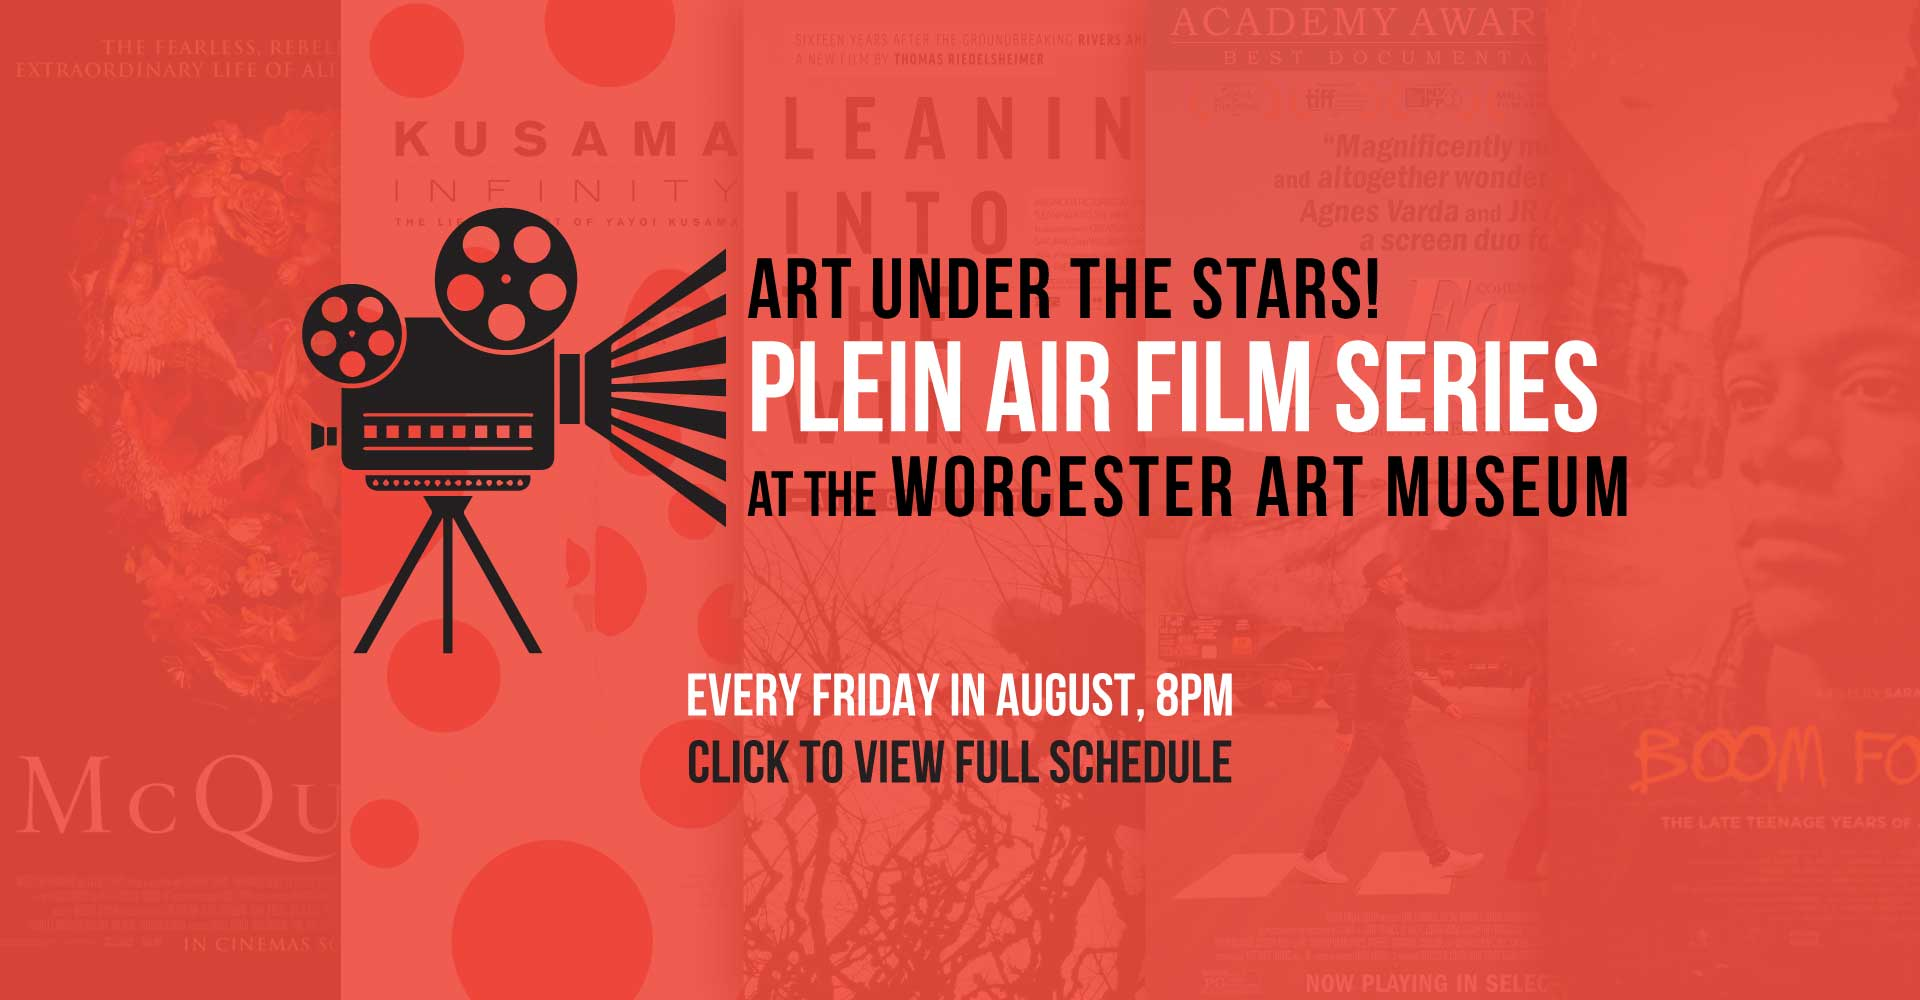 Plein Air Film Series at the Worcester Art Museum – Every Friday in August, 8pm